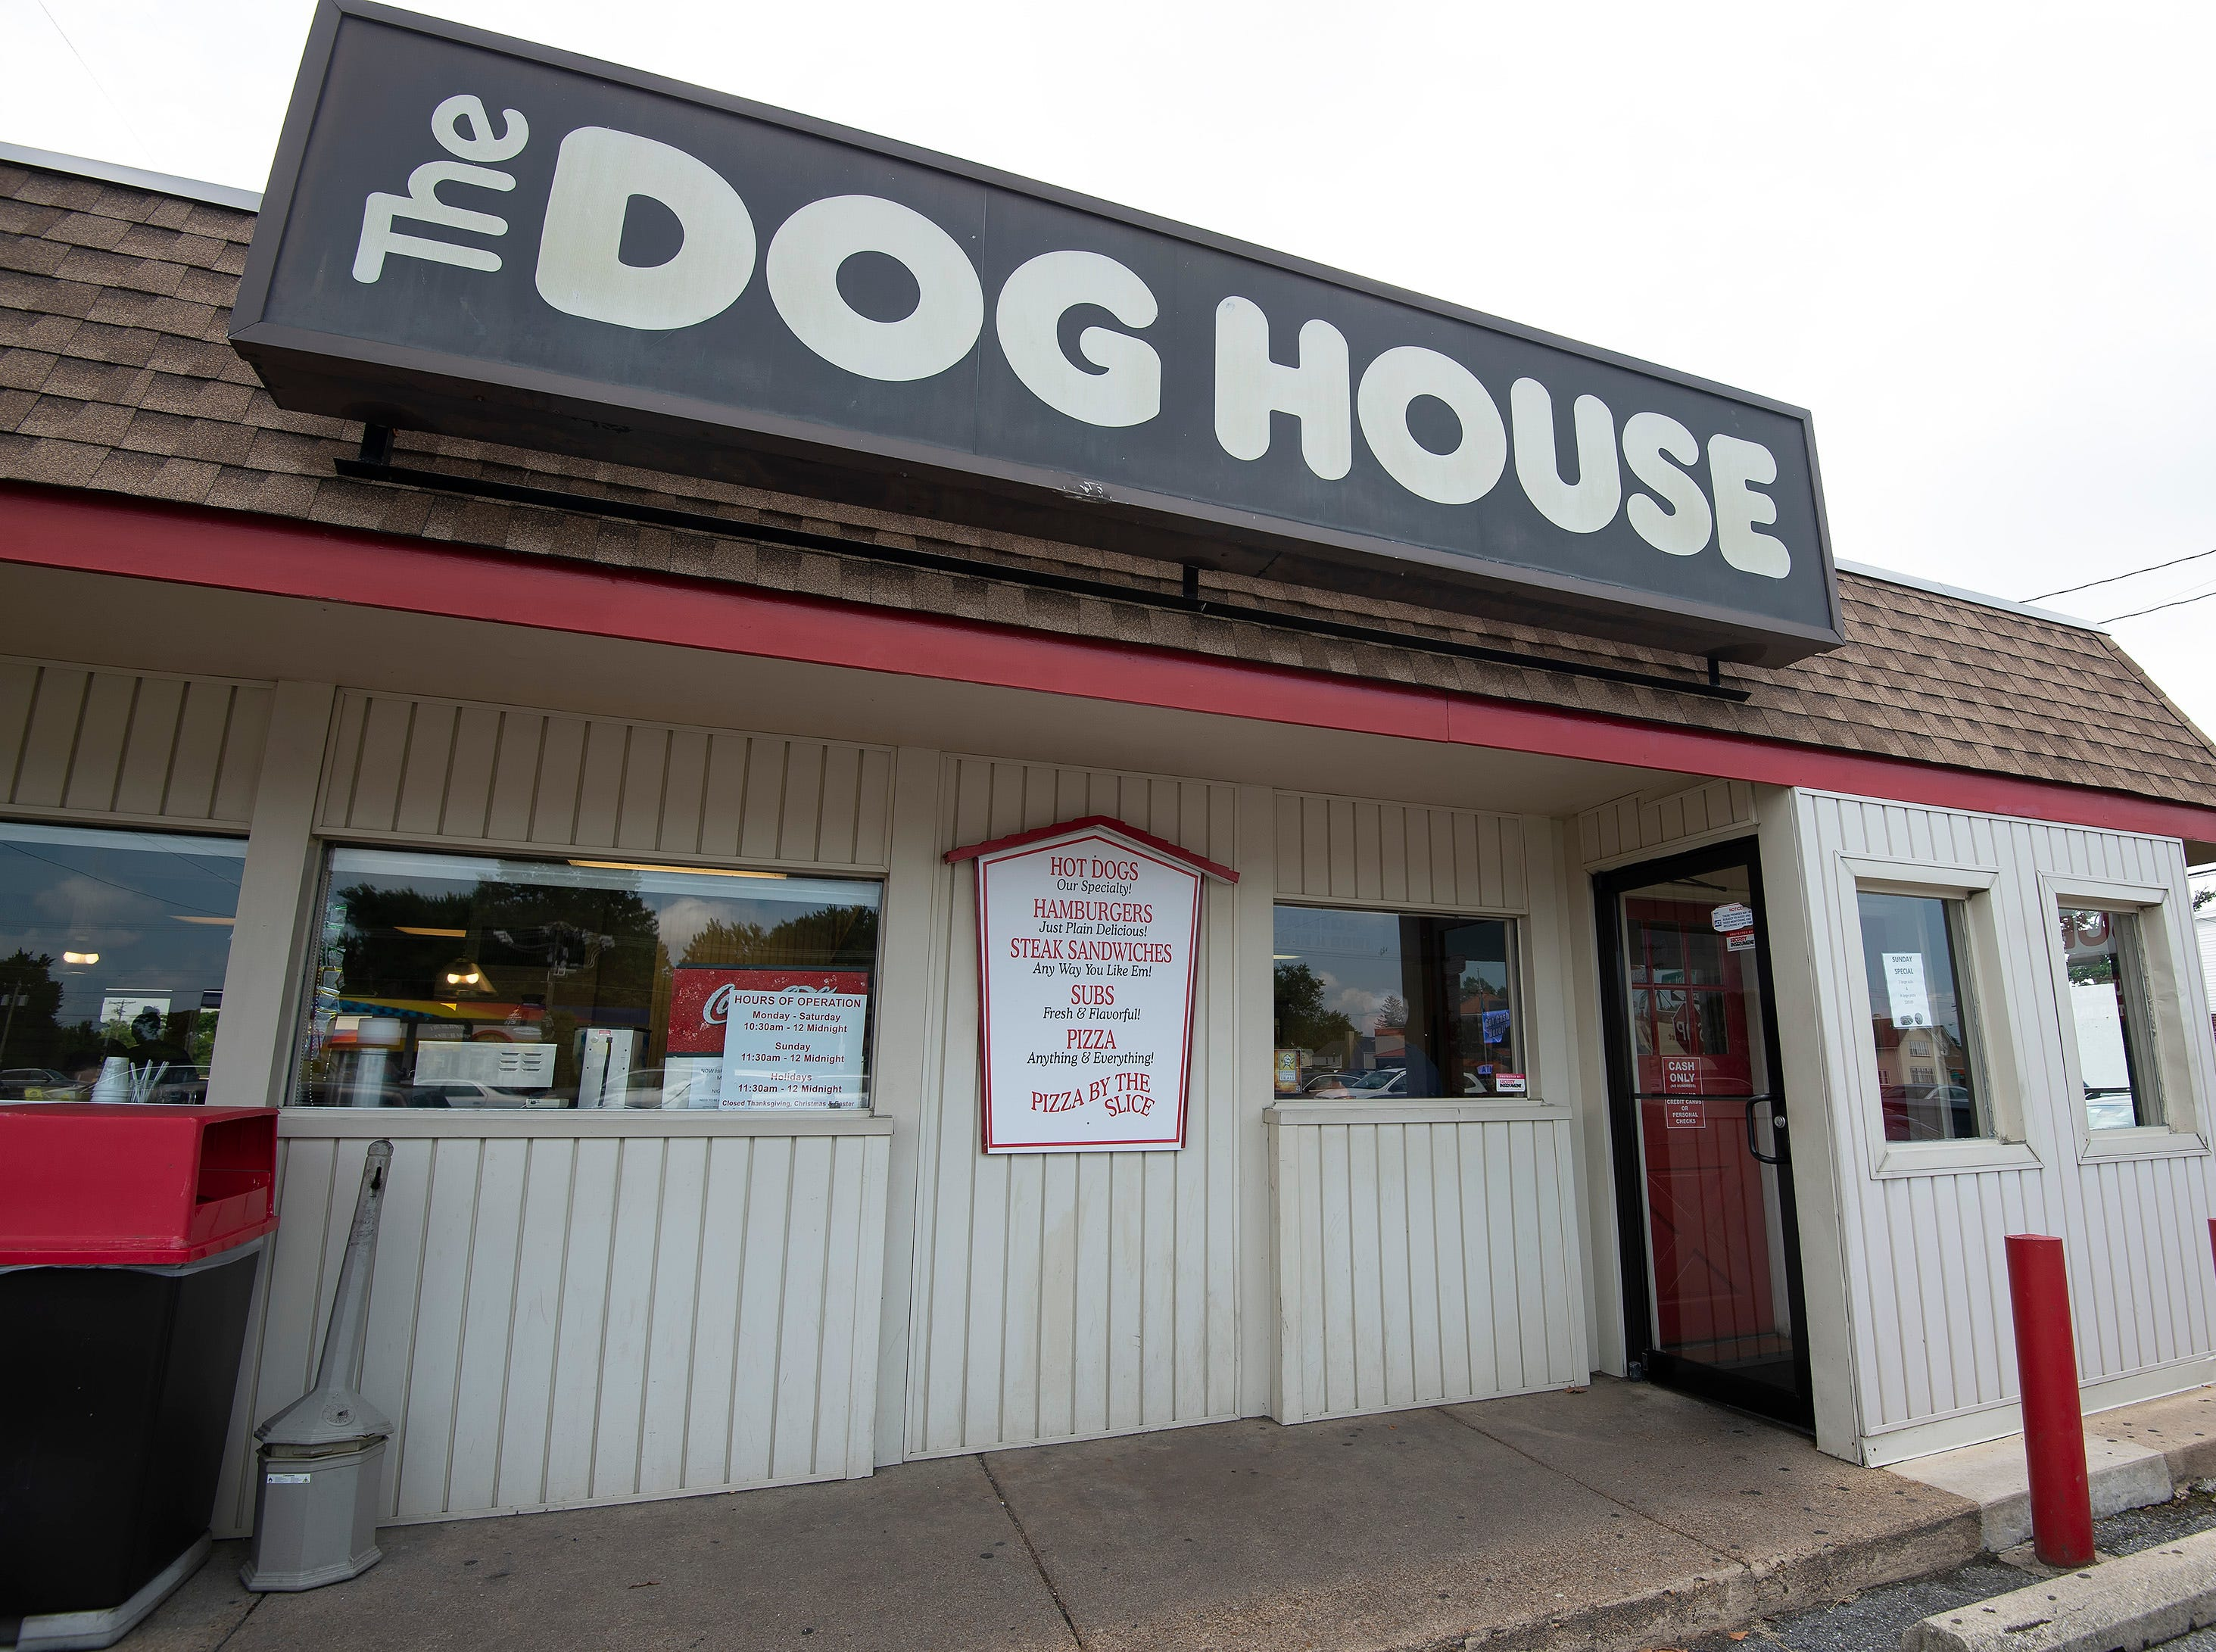 Eat at the Dog House in Wilmington, or another classic Delaware restaurant. www.delawareonline.com/story/life/food/2018/08/01/restaurants-classics-delaware-dining/791705002/